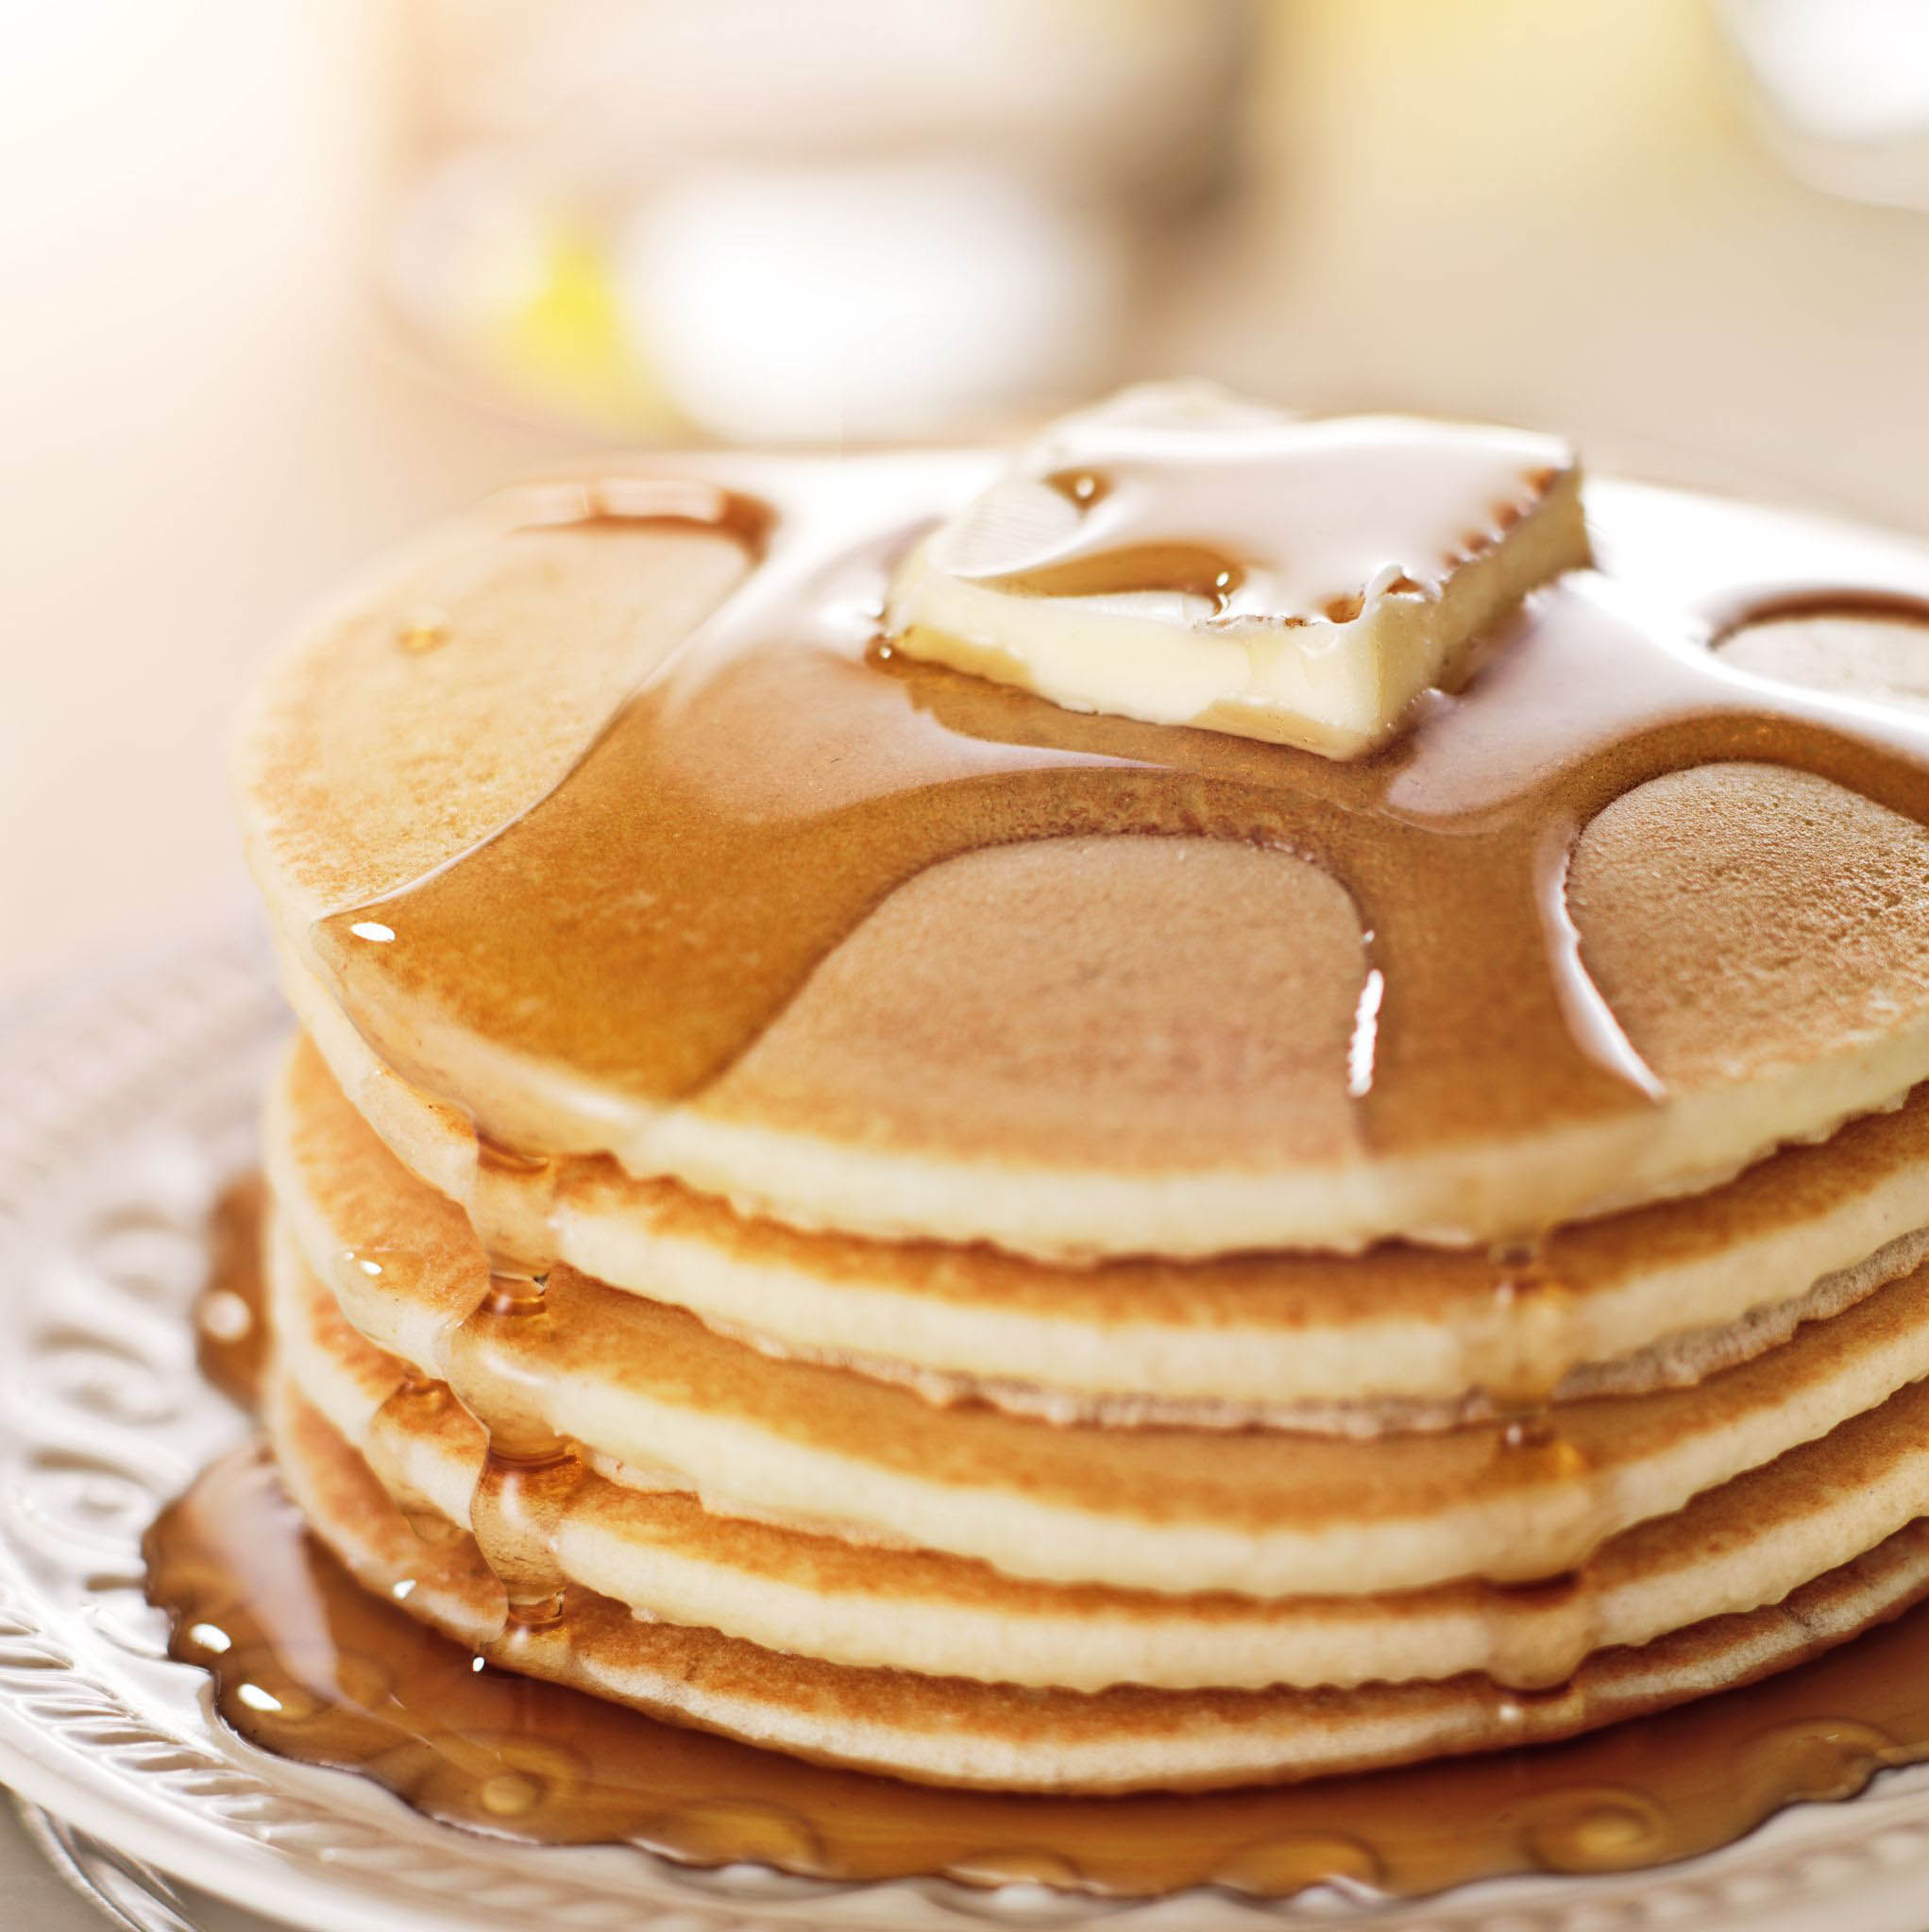 pancakes-and-syrup-california-united-states